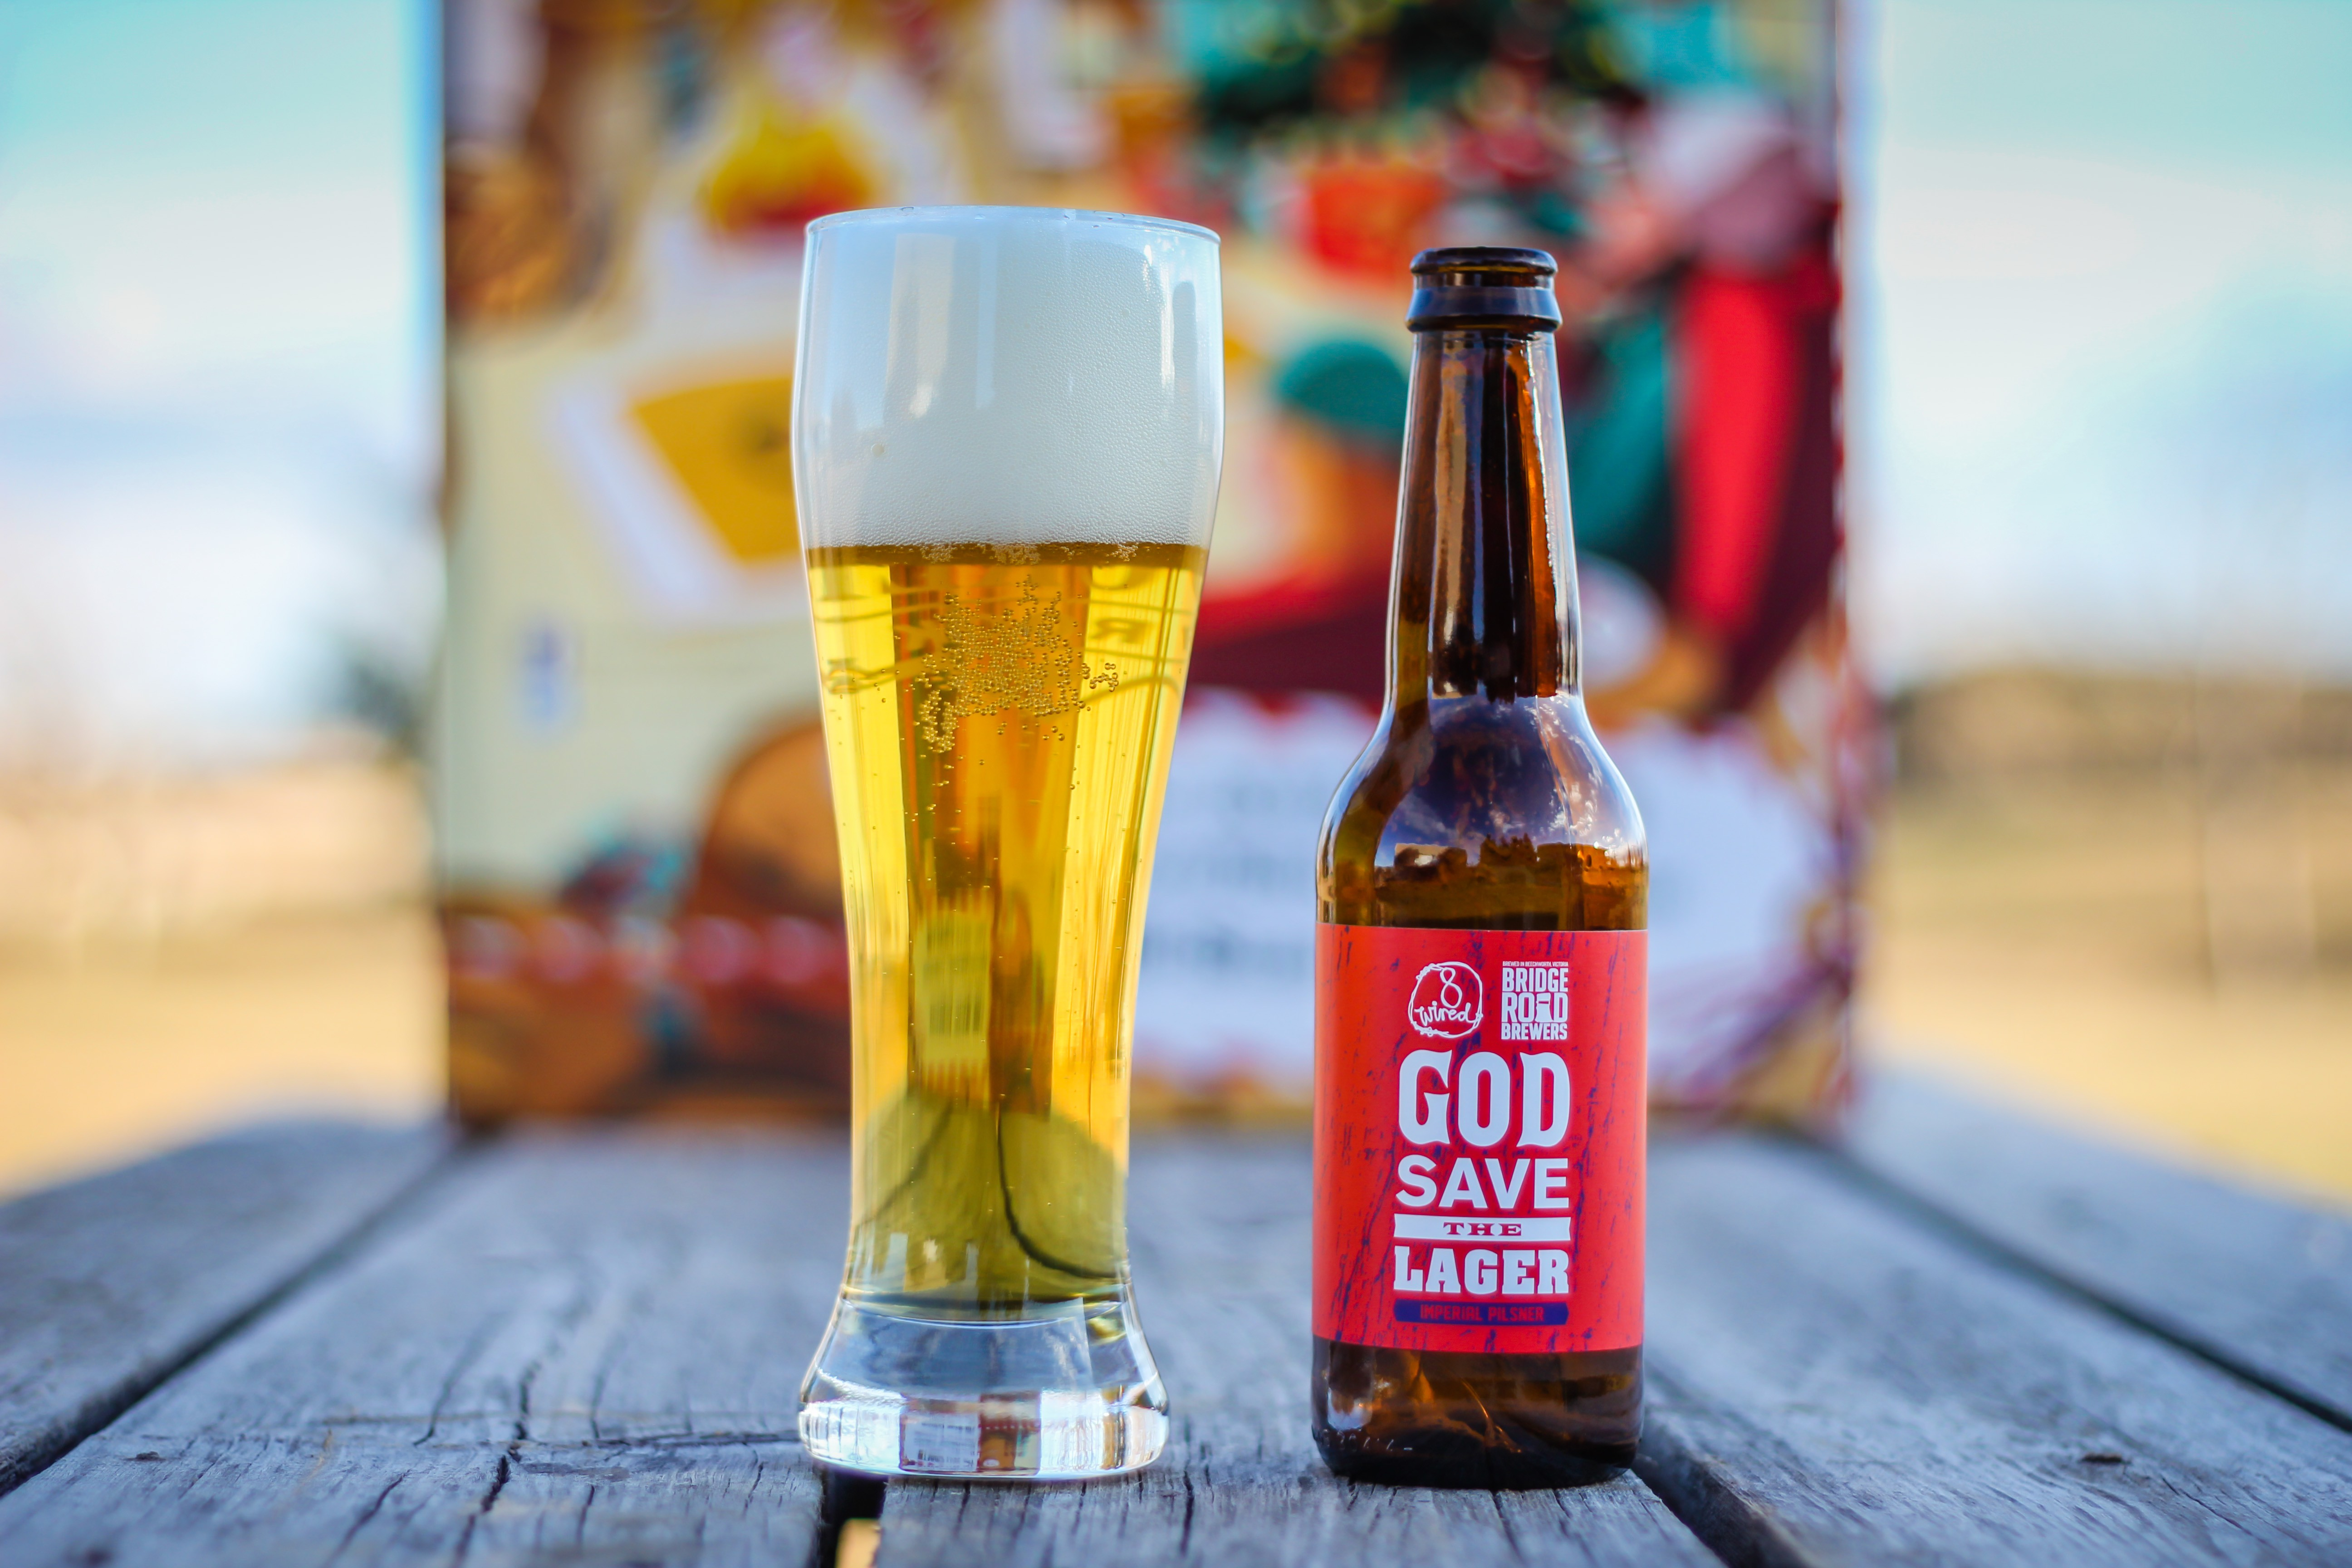 Day 24: 8 Wired Brewing/Bridge Road Brewers God Save The Lager